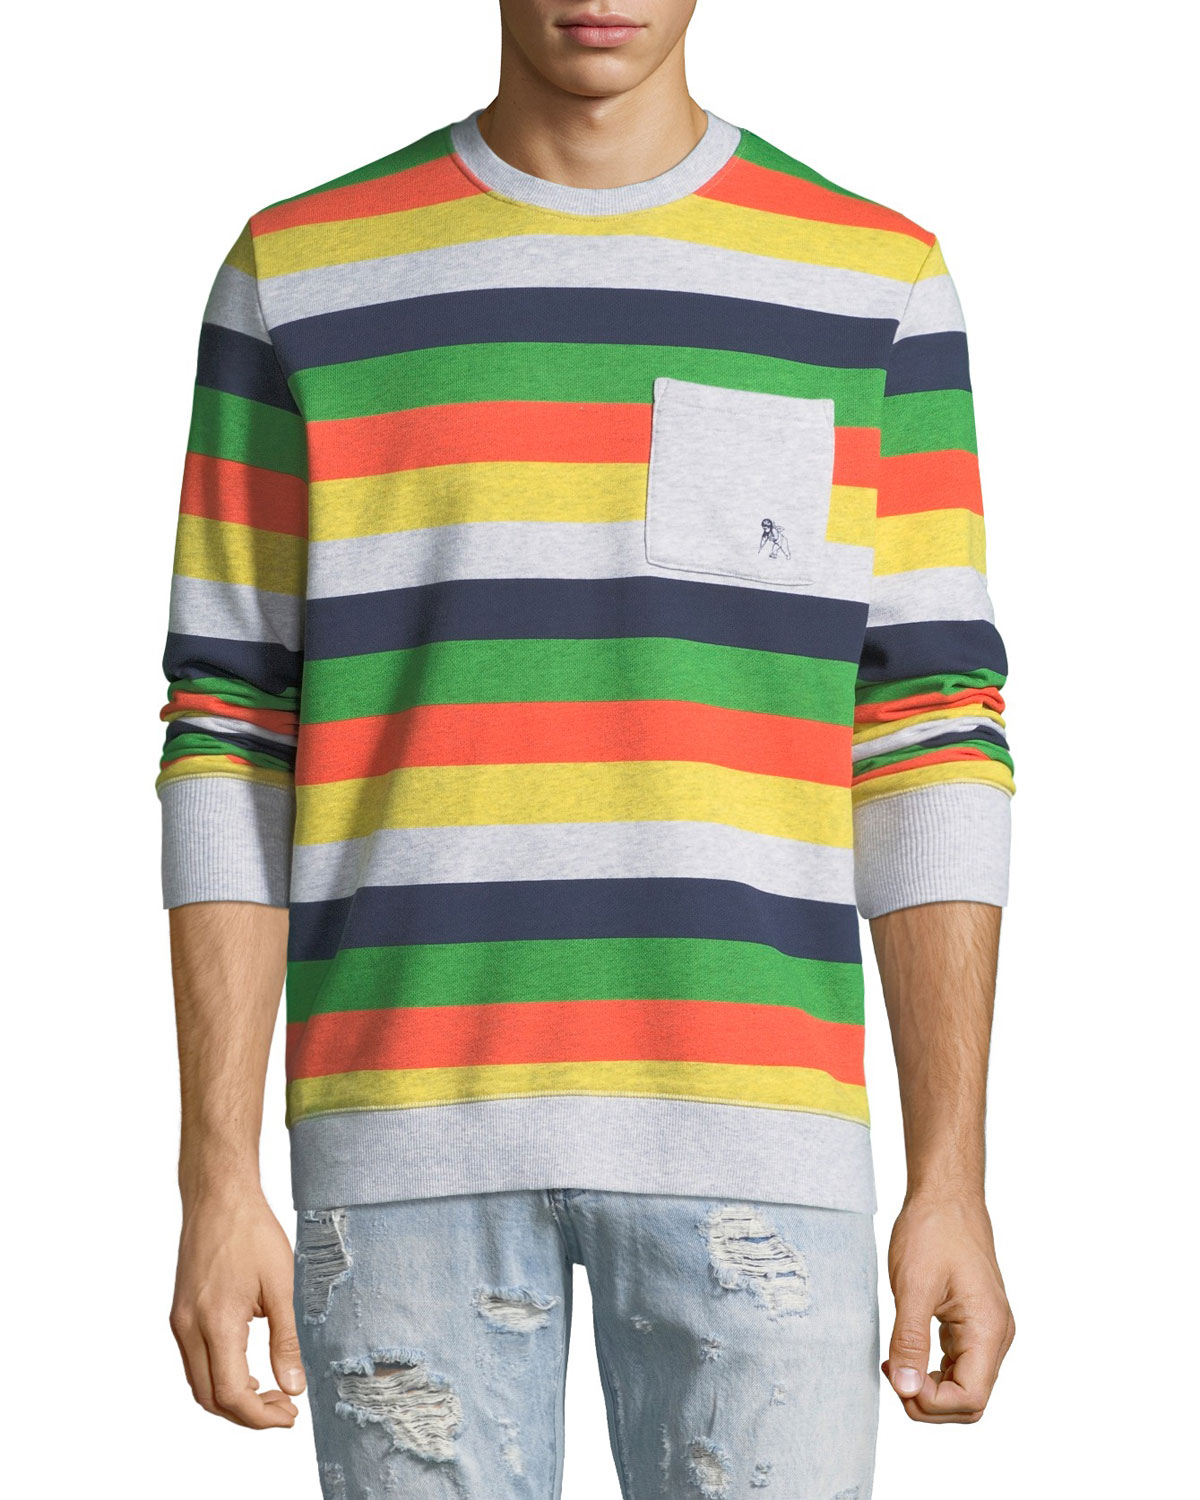 Men's Candy-Stripe Fleece Sweatshirt with Pocket